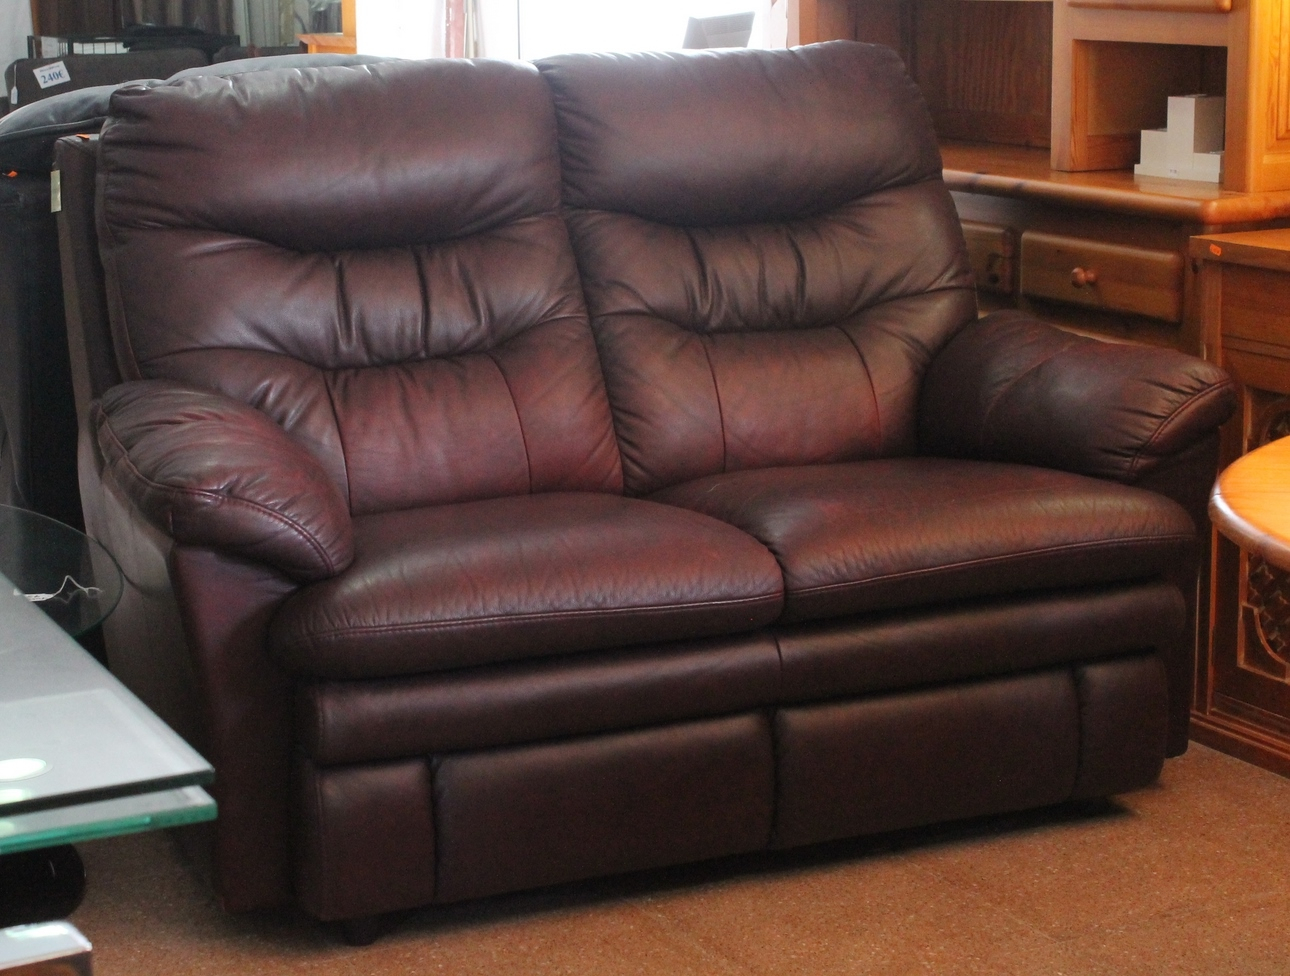 New2you Furniture Second Hand Sofassofa Beds For The intended for measurements 1290 X 976